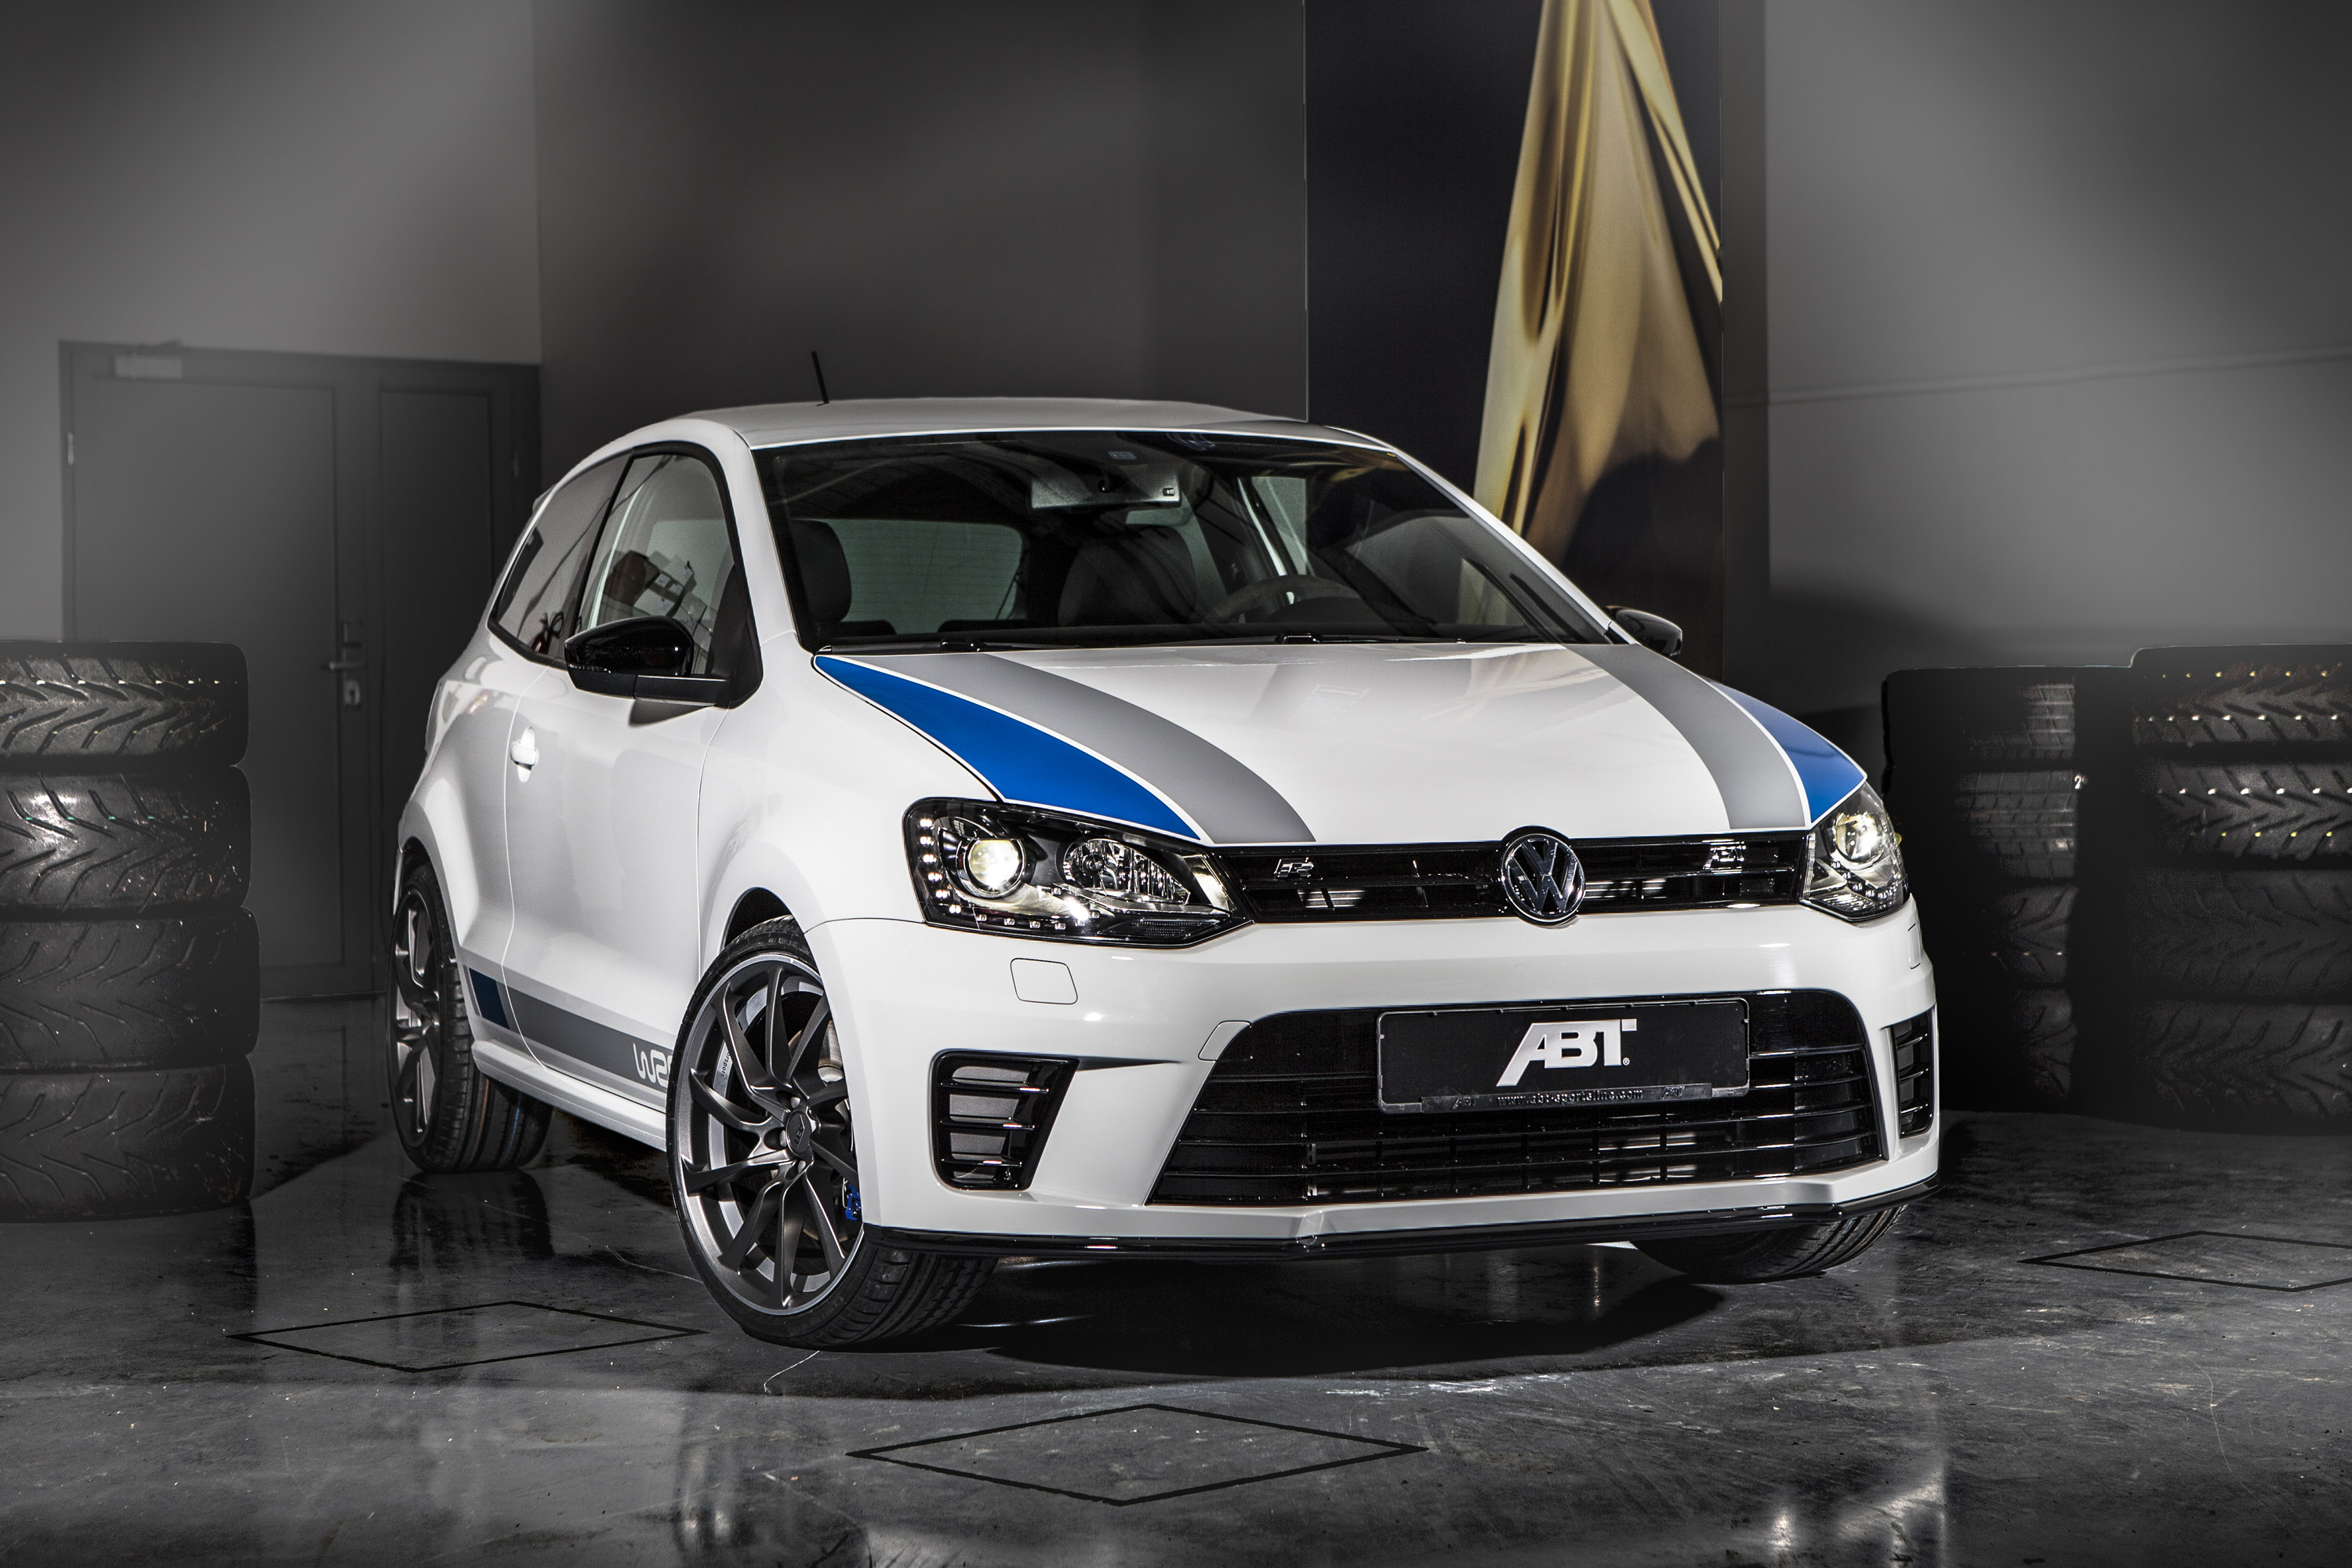 2013 Volkswagen Polo R Wrc By Abt Sportsline Pictures Photos